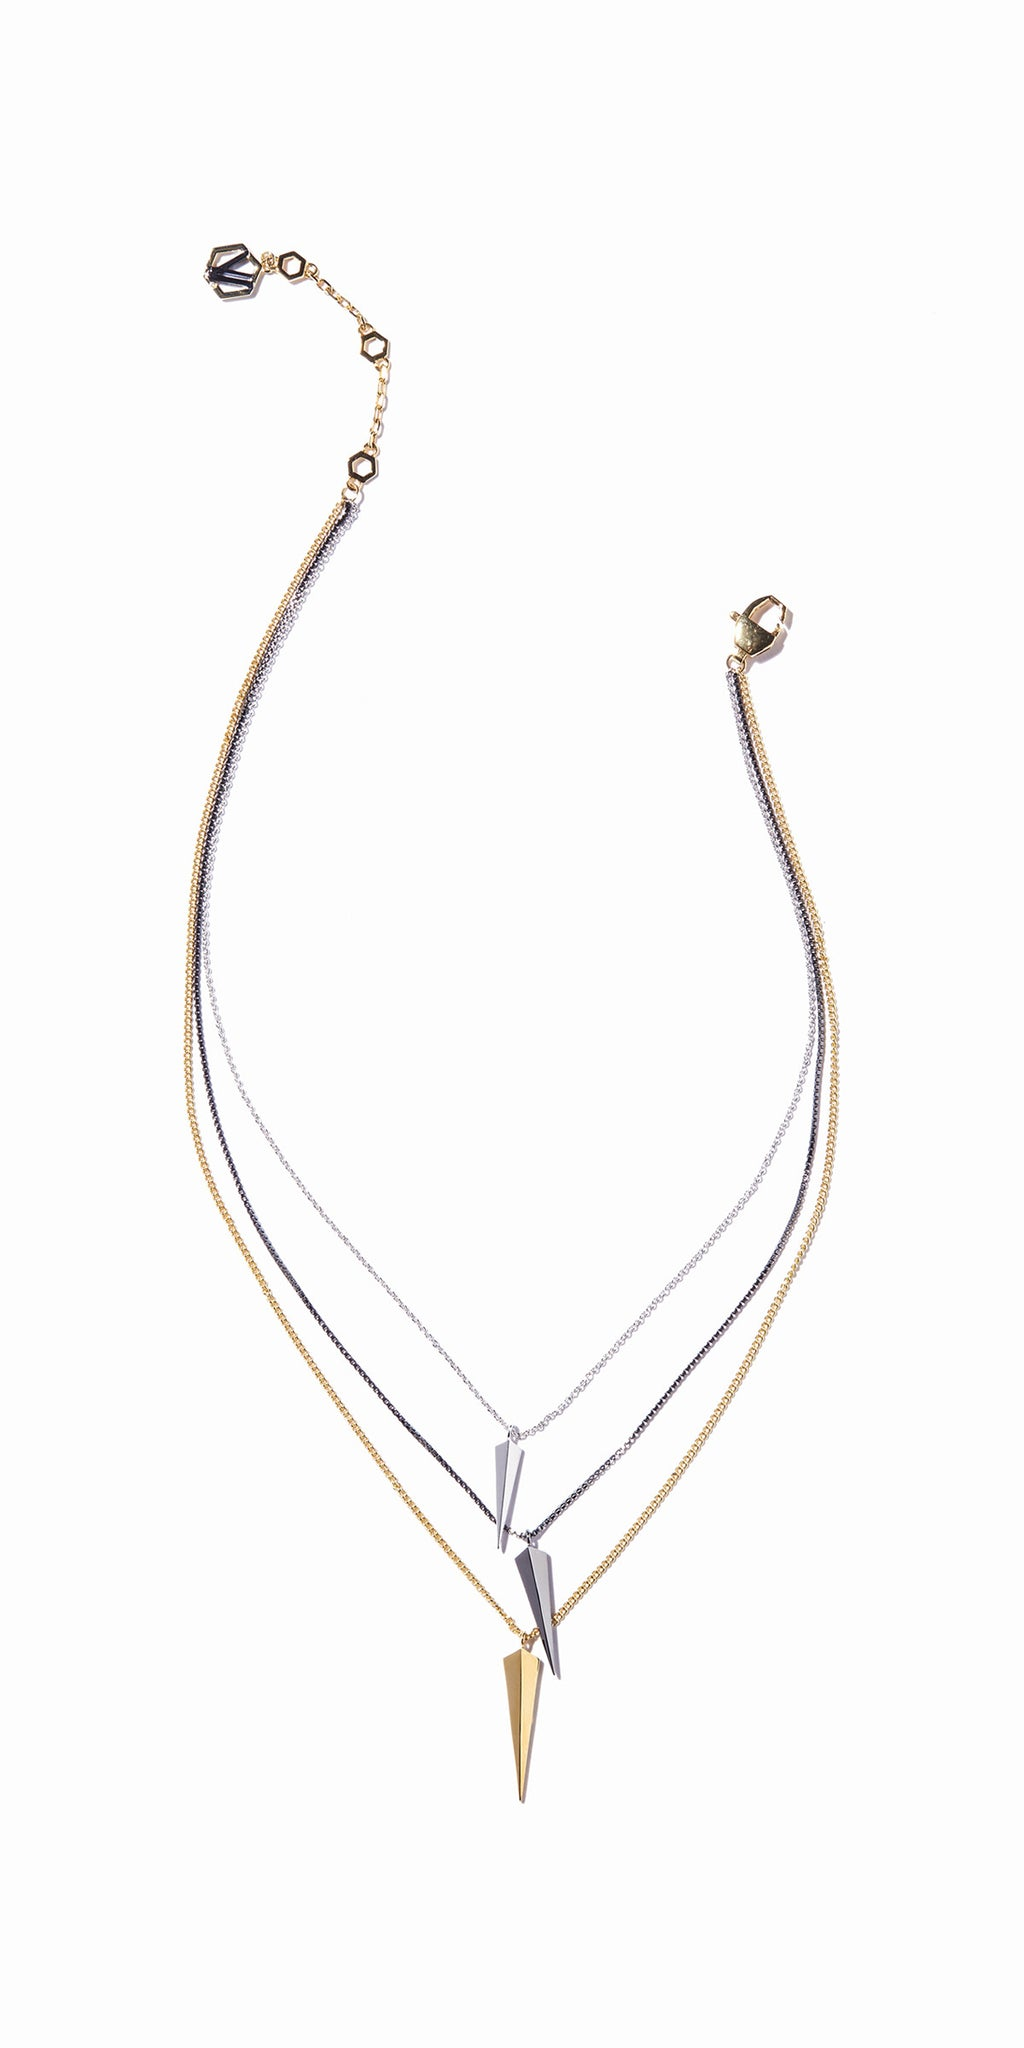 Vide Three-layered Necklace - 3 Tone Gold, Rhodium and Hematite